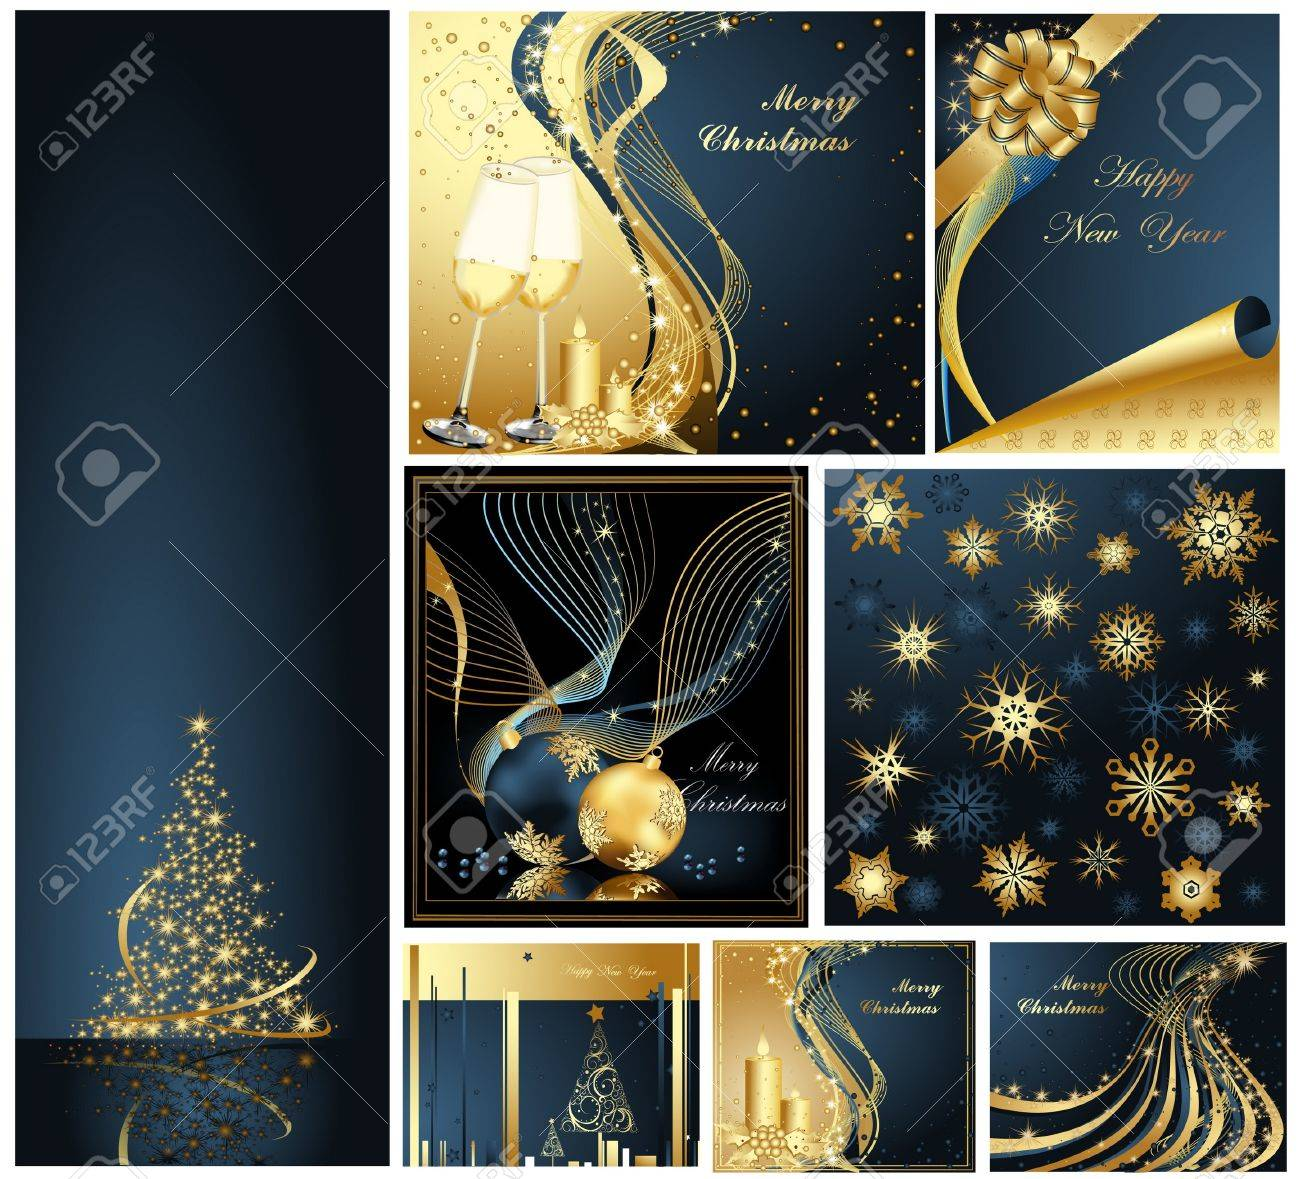 Merry Christmas and Happy New Year collection gold and blue Stock Vector - 10981714